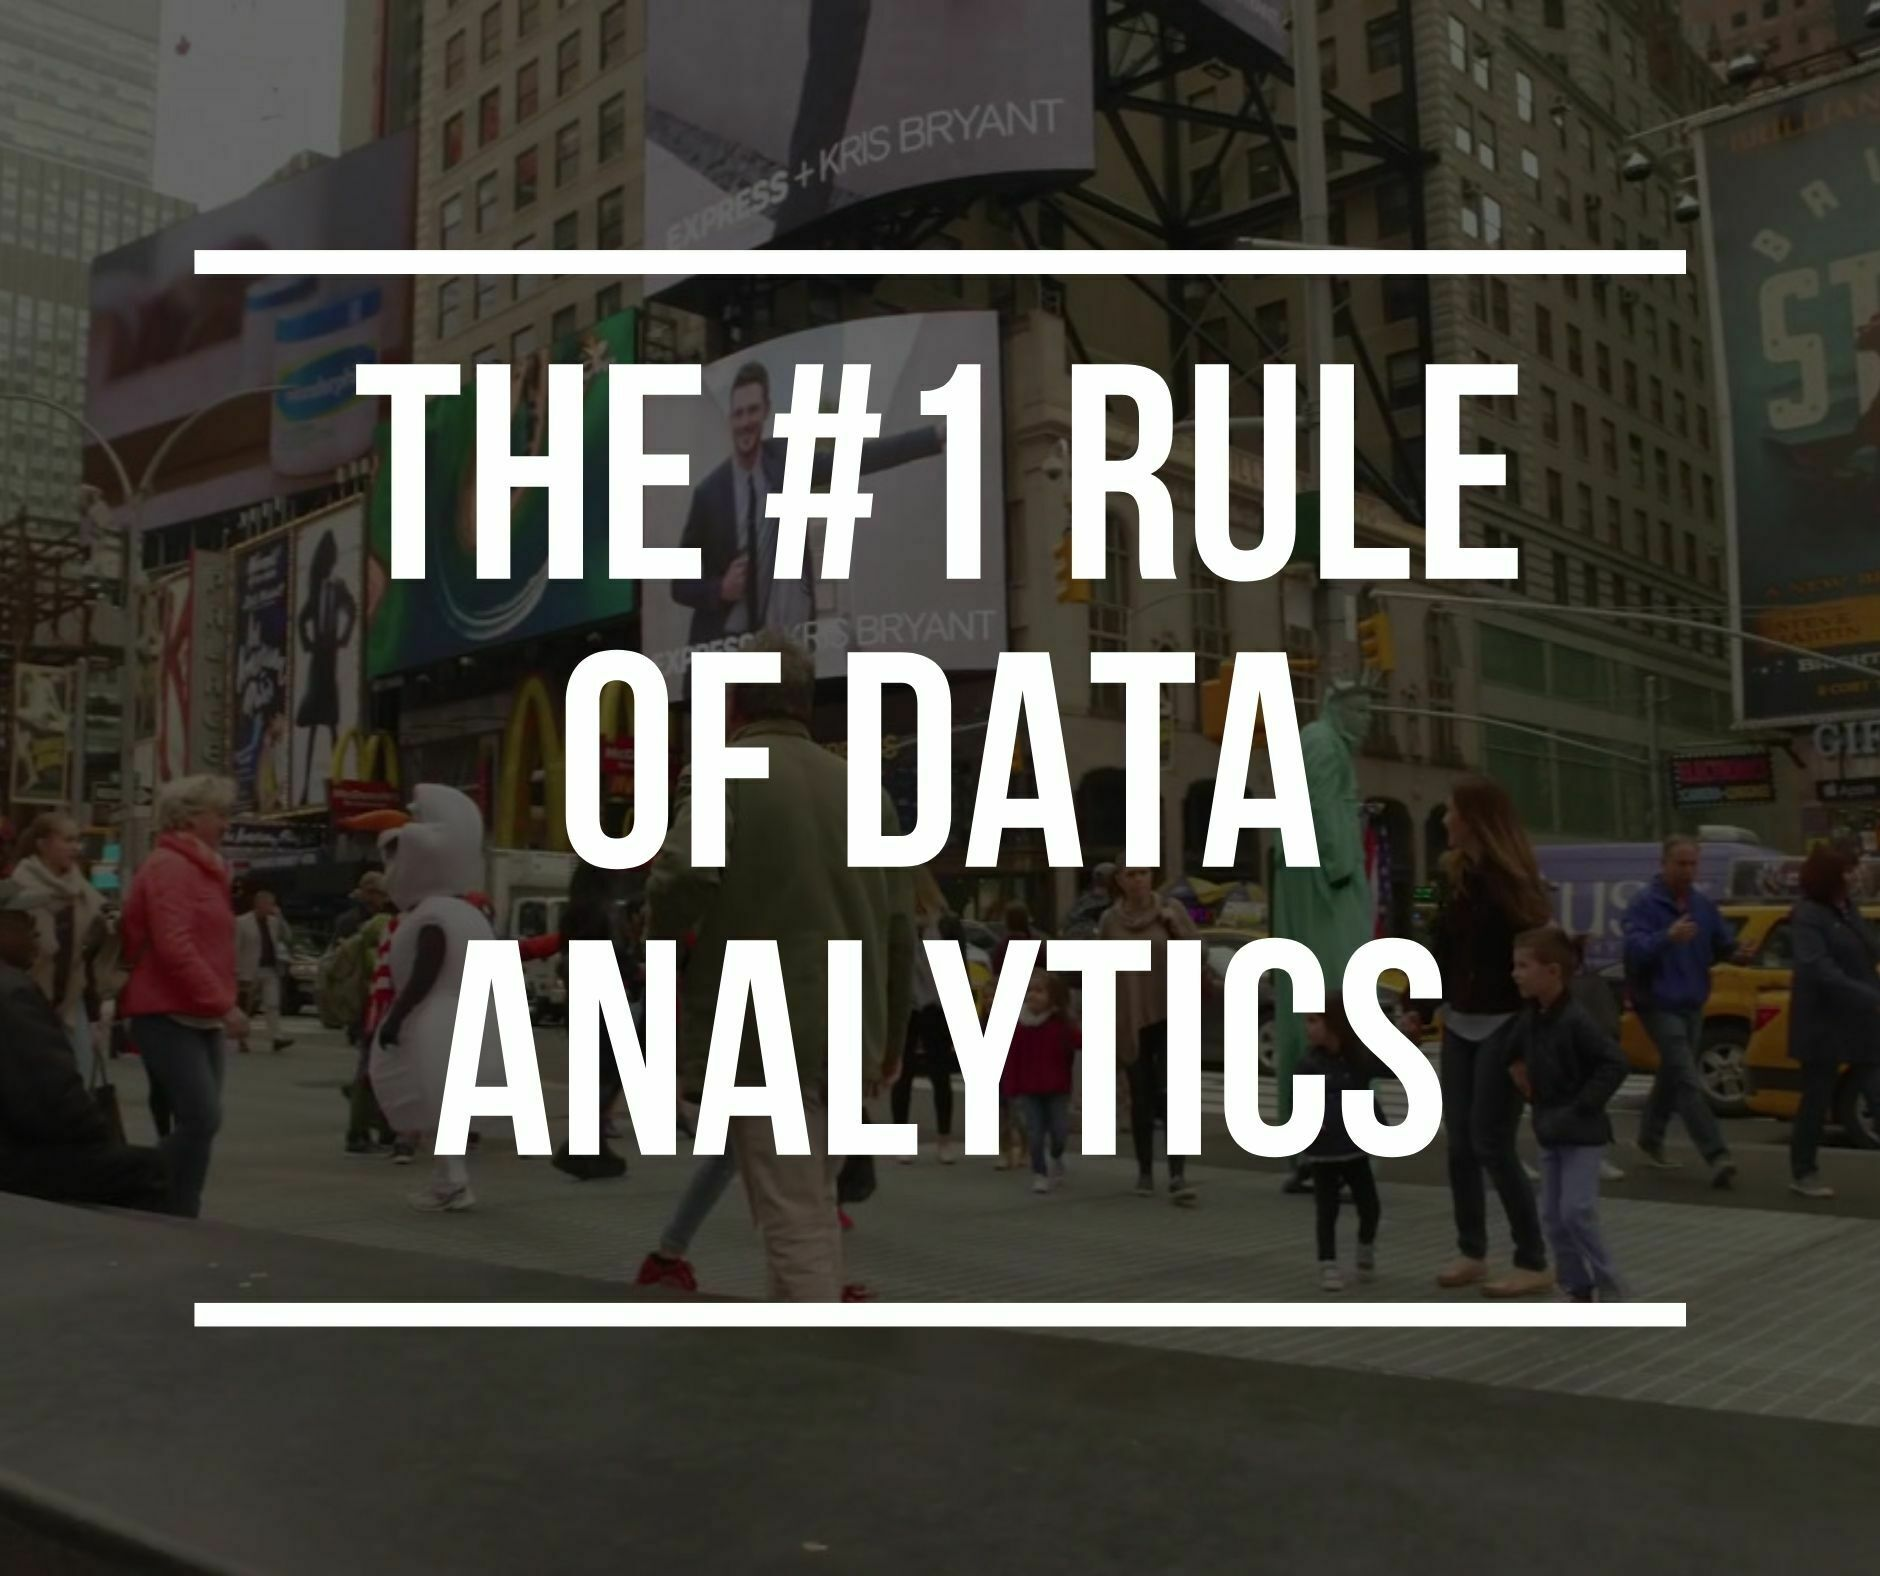 The #1 rule of data analytics